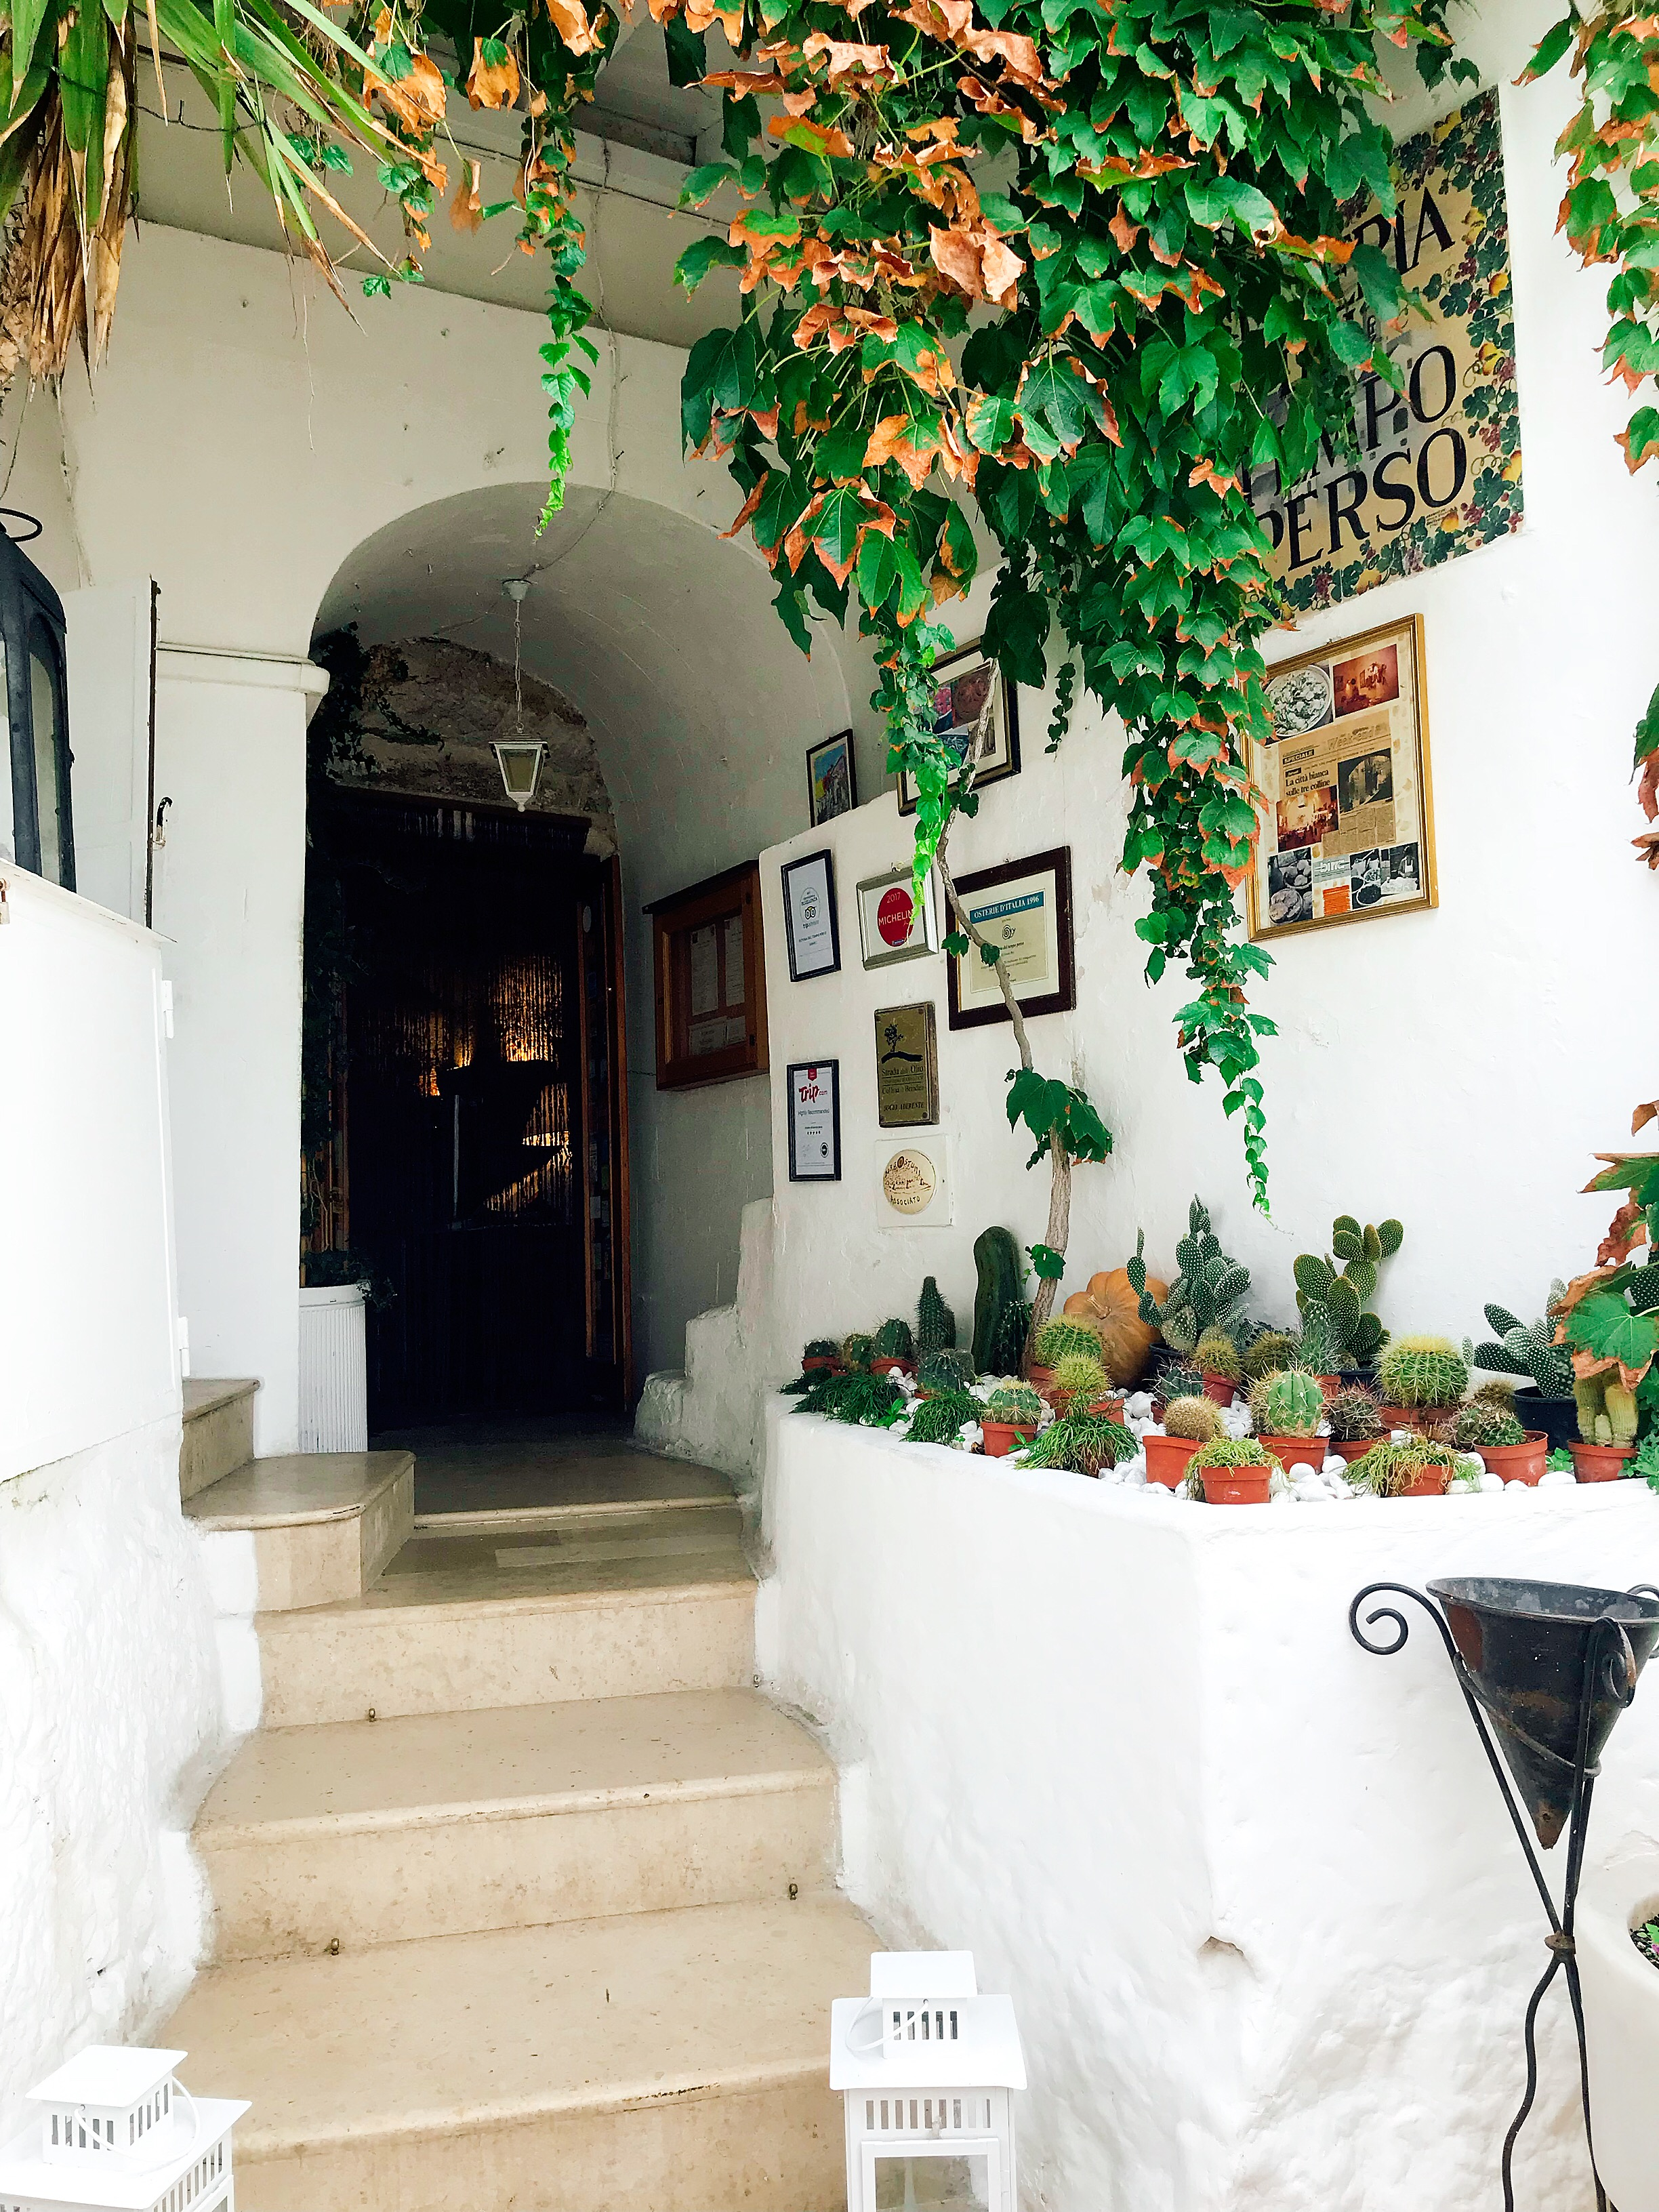 The Darling Entrance Of Osteria Del Tempo Perso